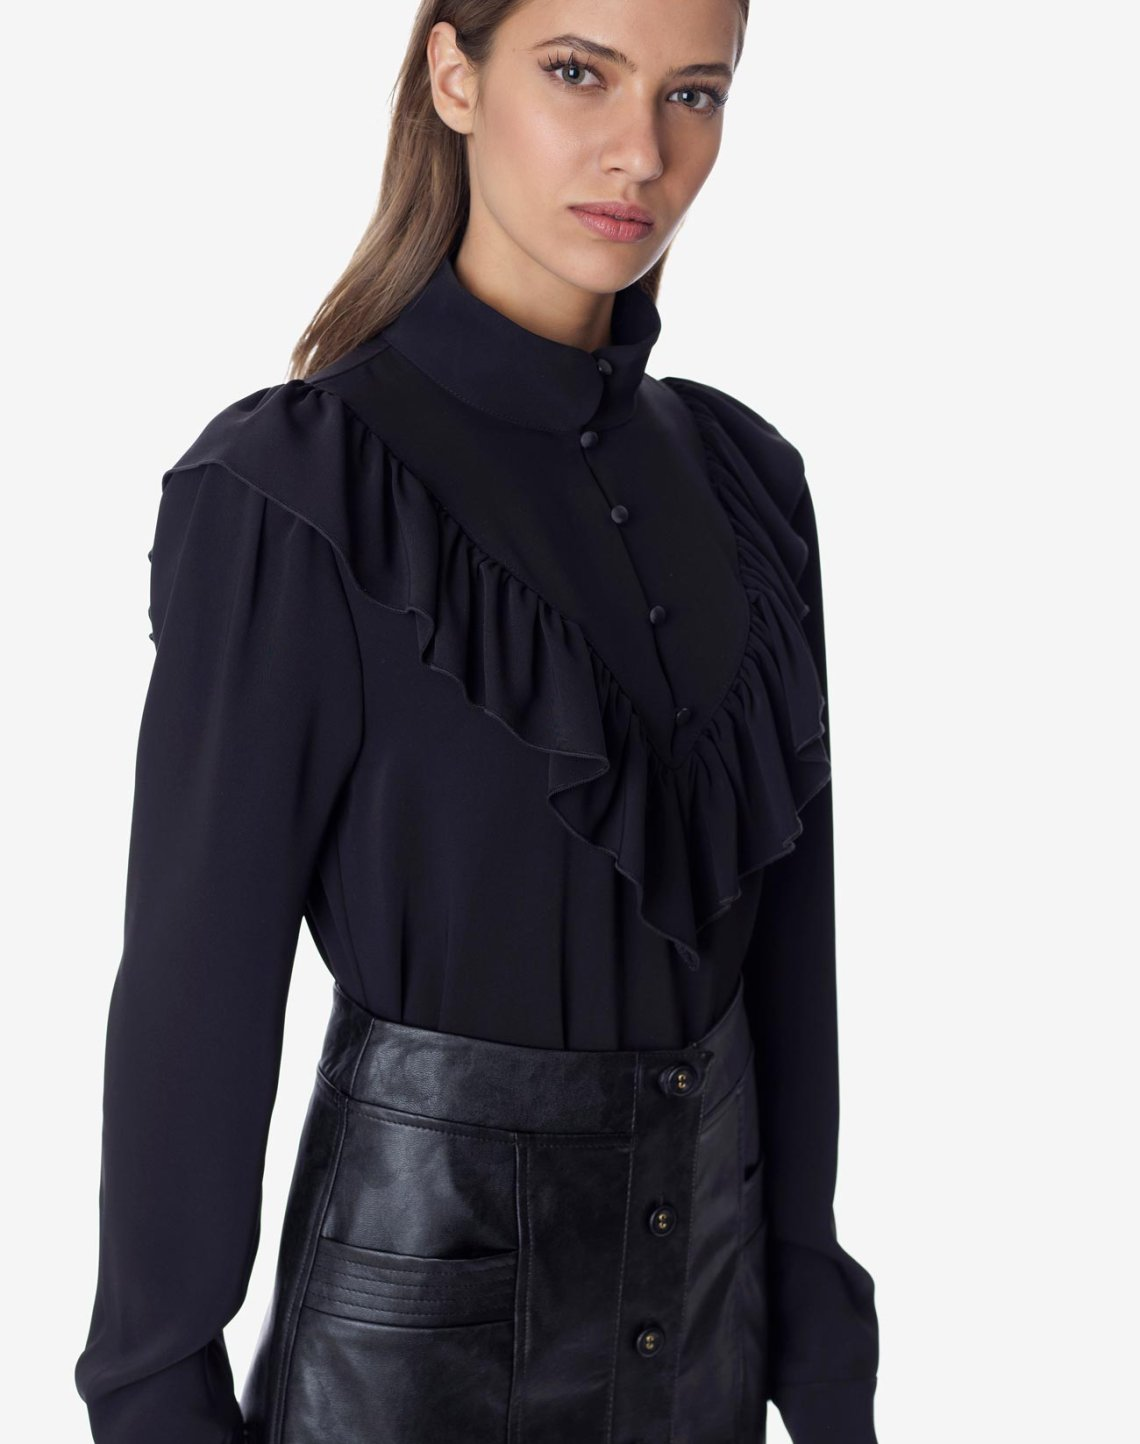 Blouse with high neck